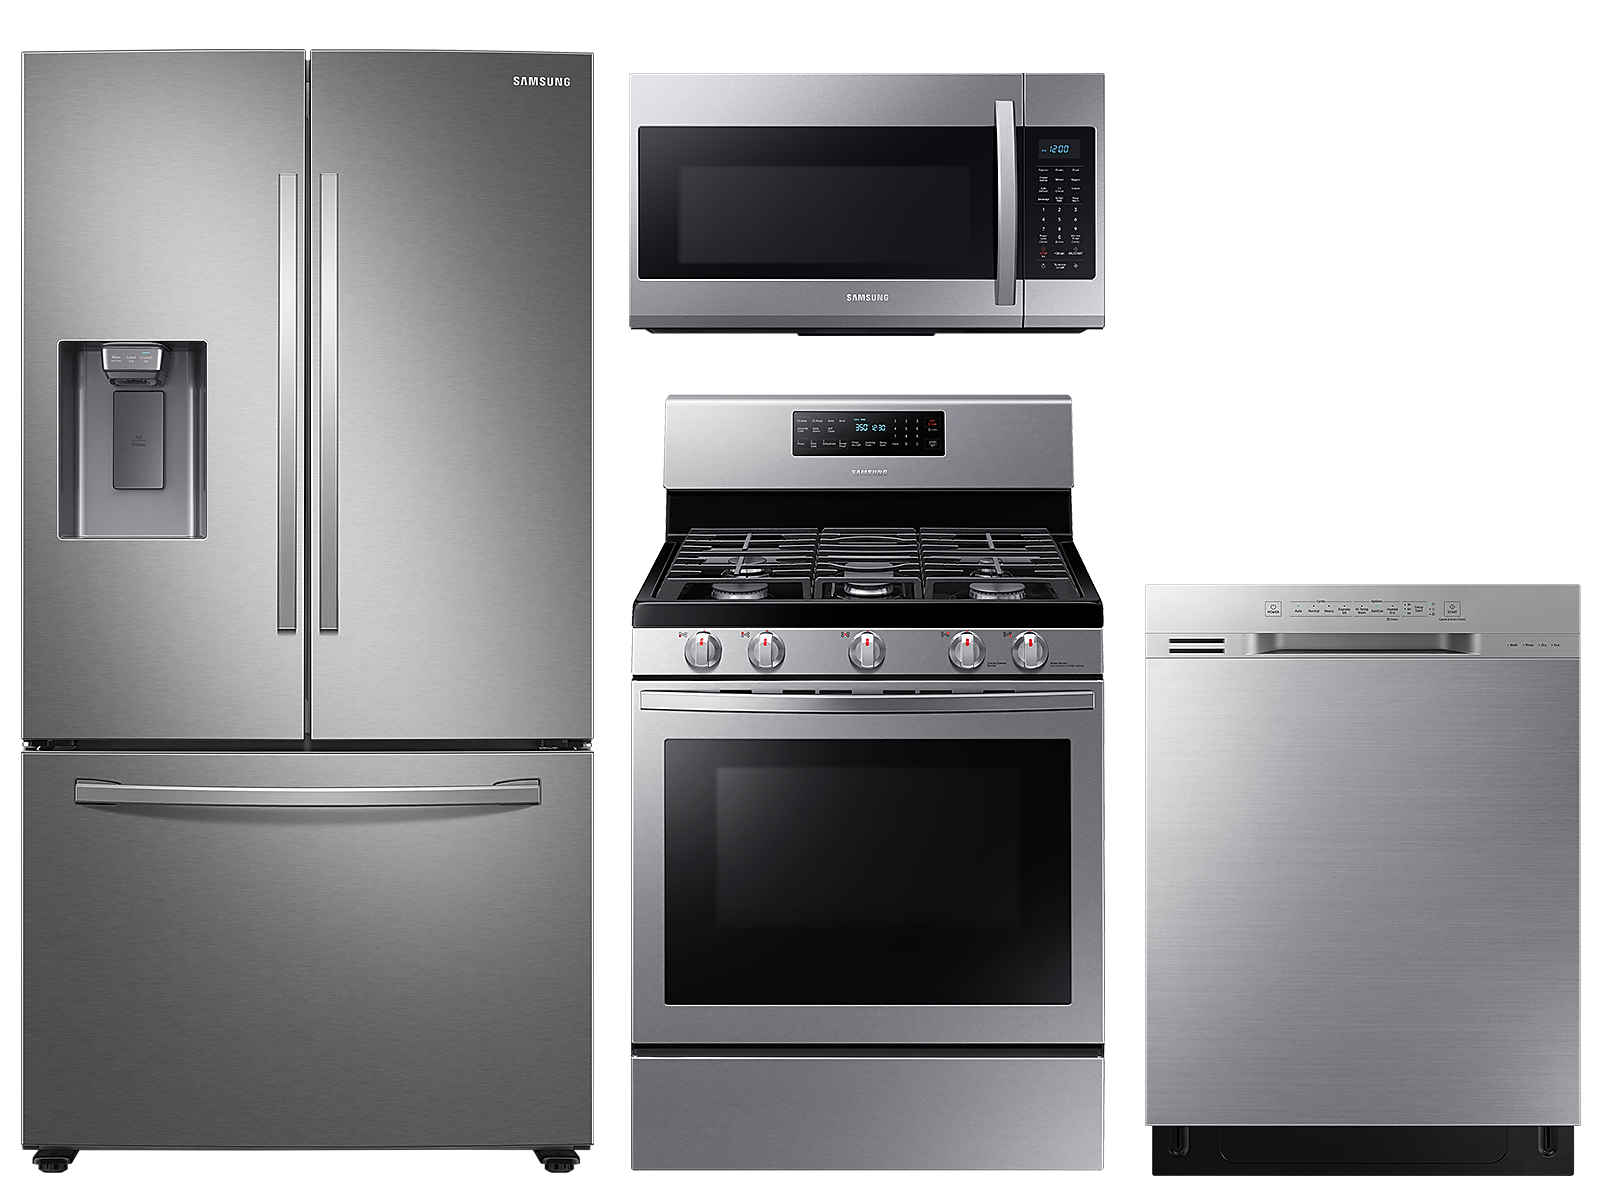 Samsung coupon: Samsung Large capacity 3-door refrigerator & gas range package in Stainless Stainless(BNDL-1590165718885)